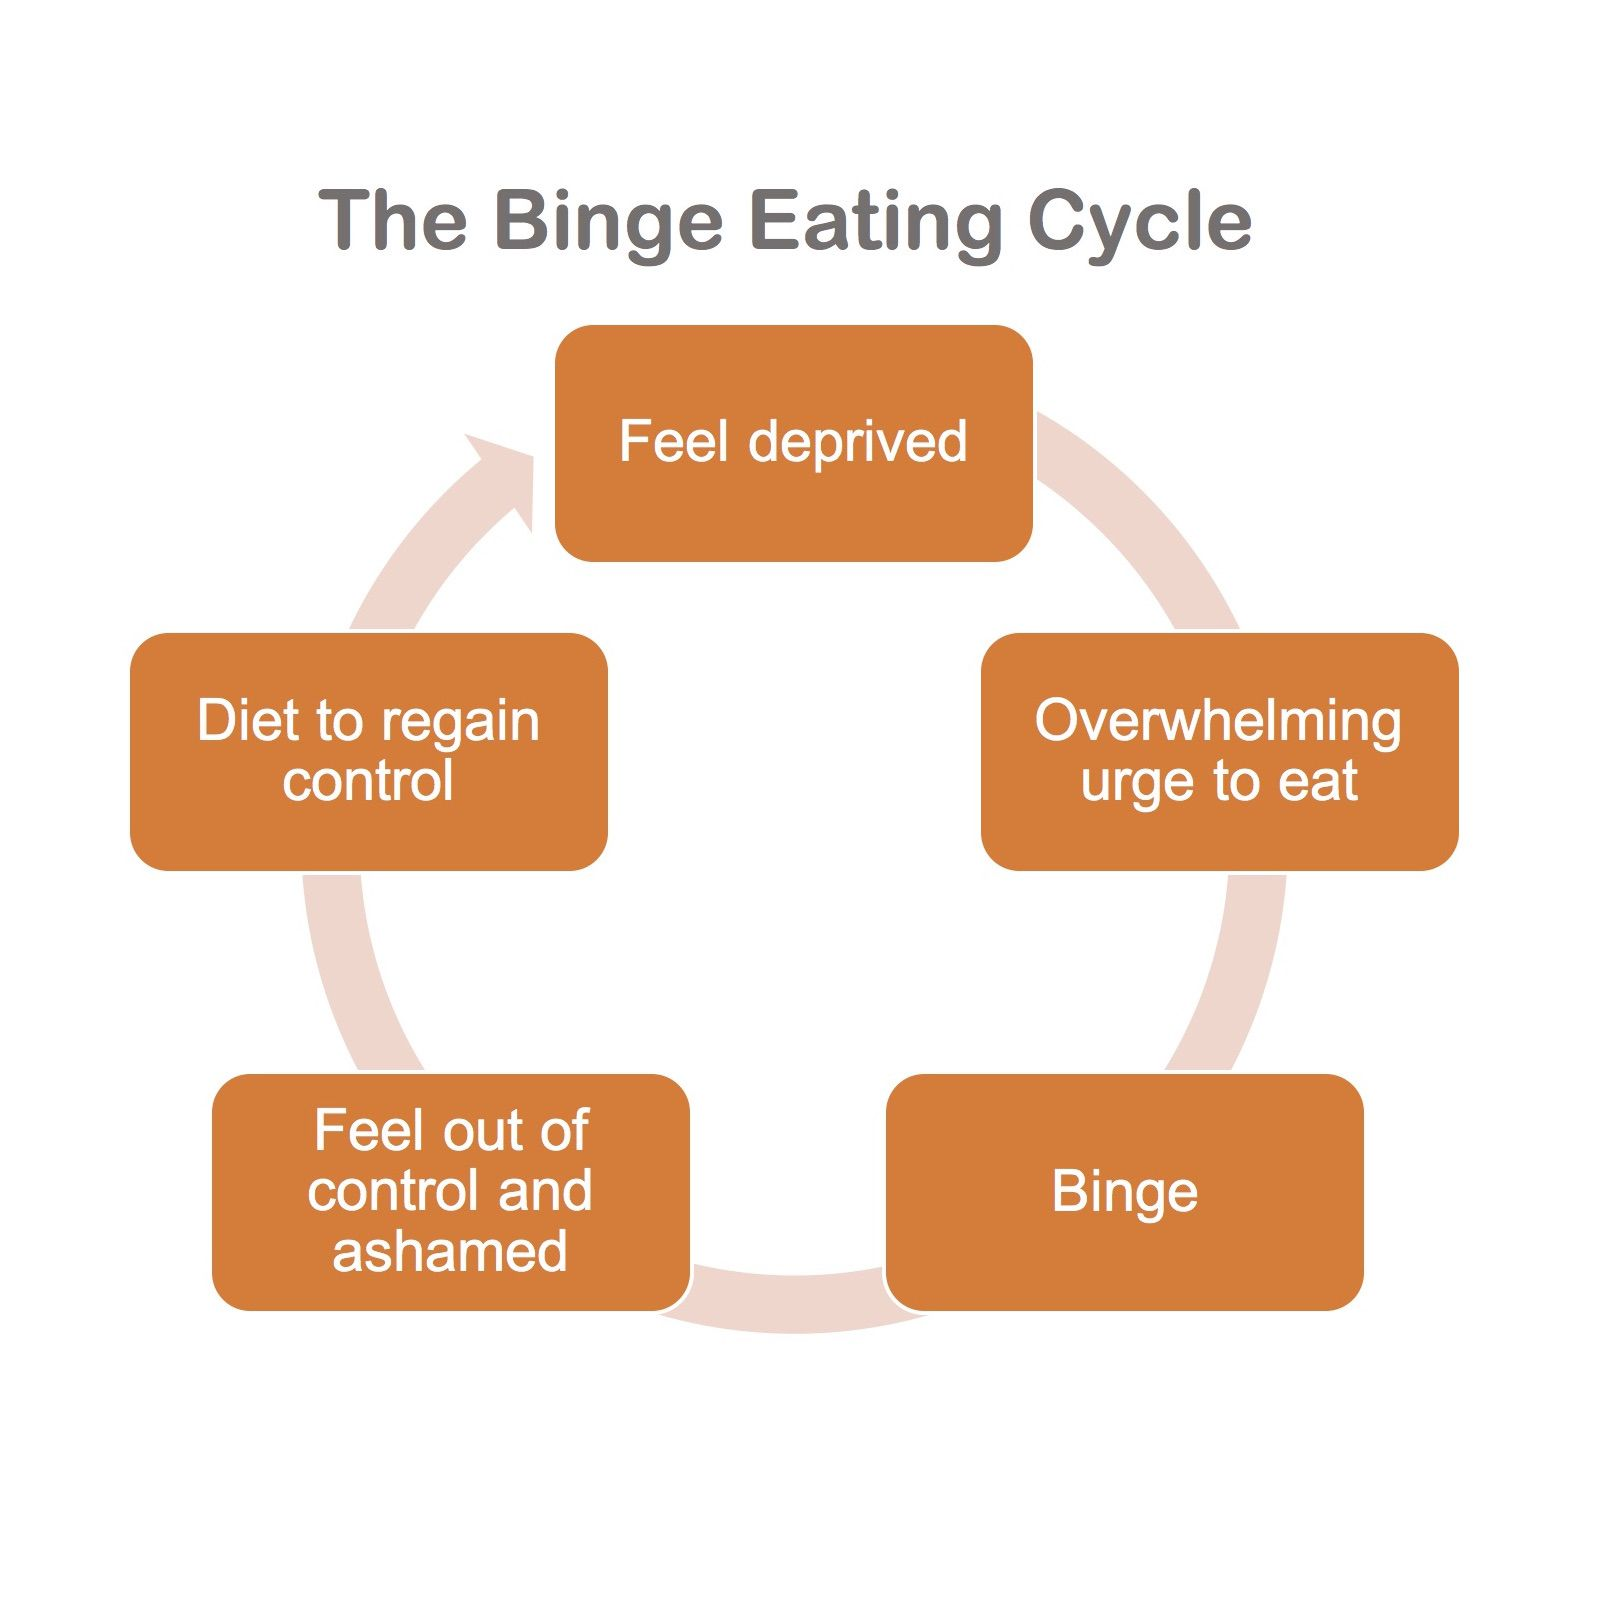 Compulsive Overeating Definition